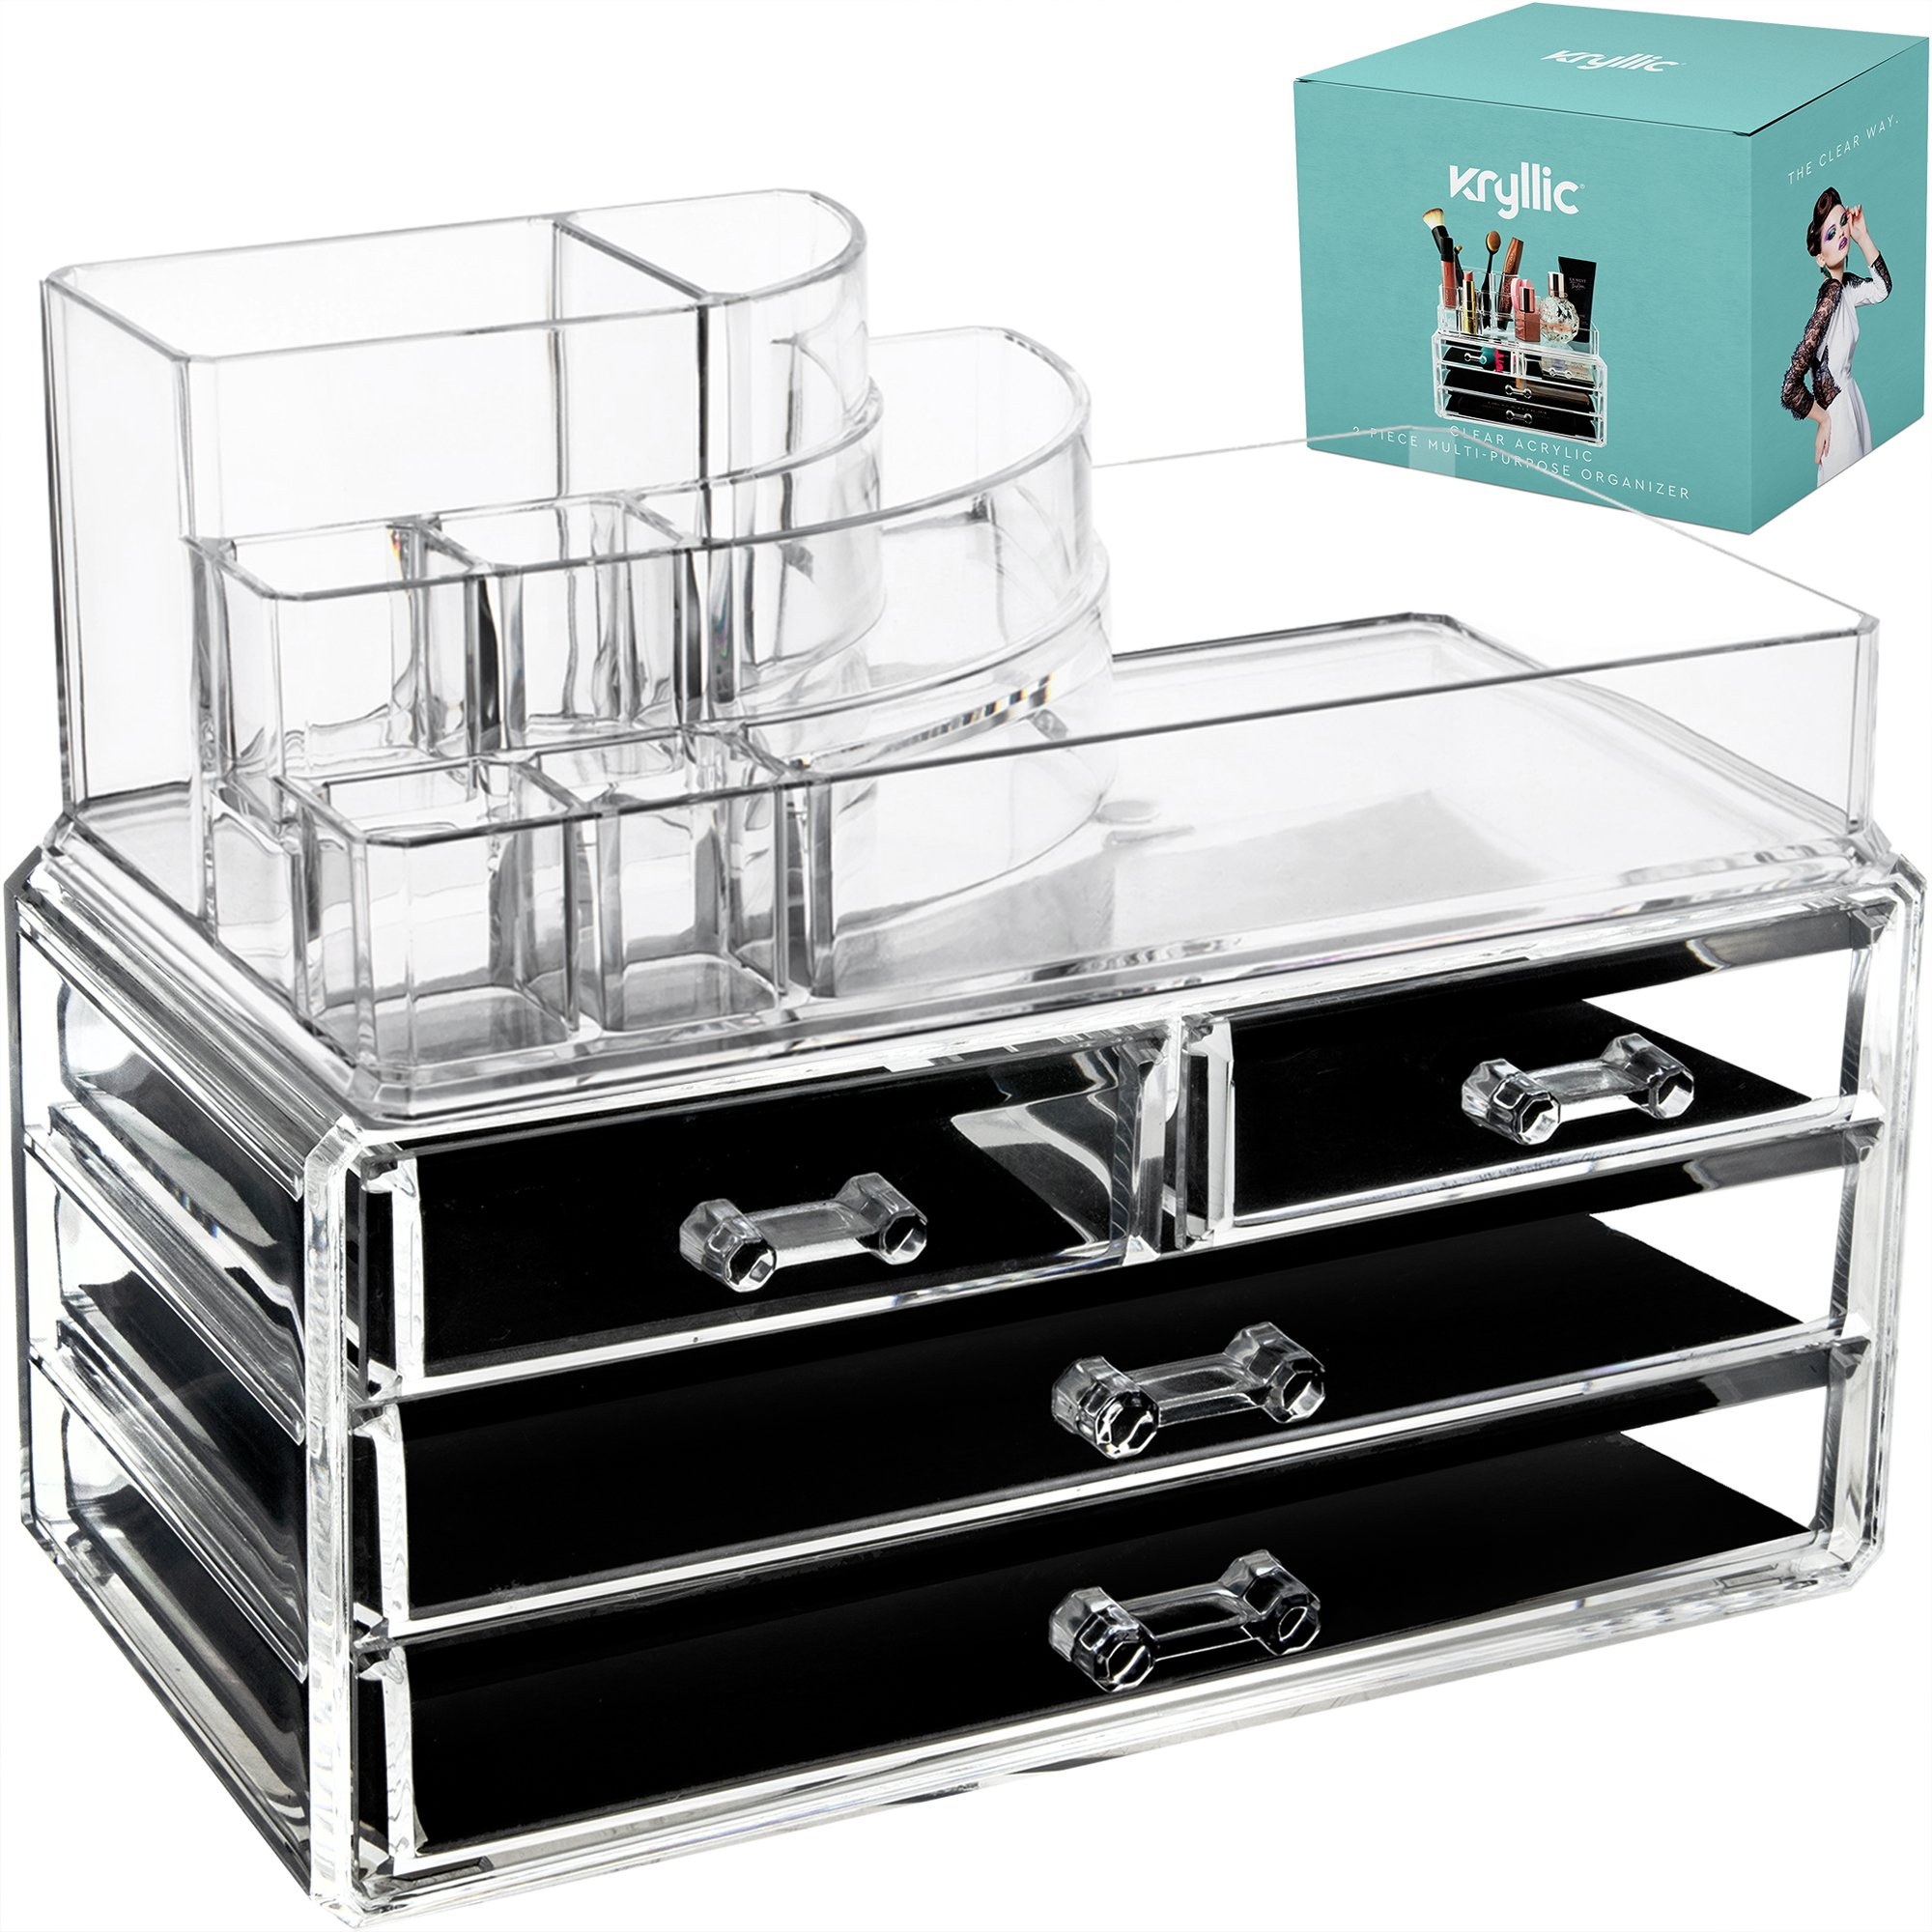 Makeup Cosmetic Storage Organizer Drawer - 4 box drawers with top multi-slot acrylic countertop vanity organizers! Brush lipstick holder excellent organization display for jewelry palettes cream pens